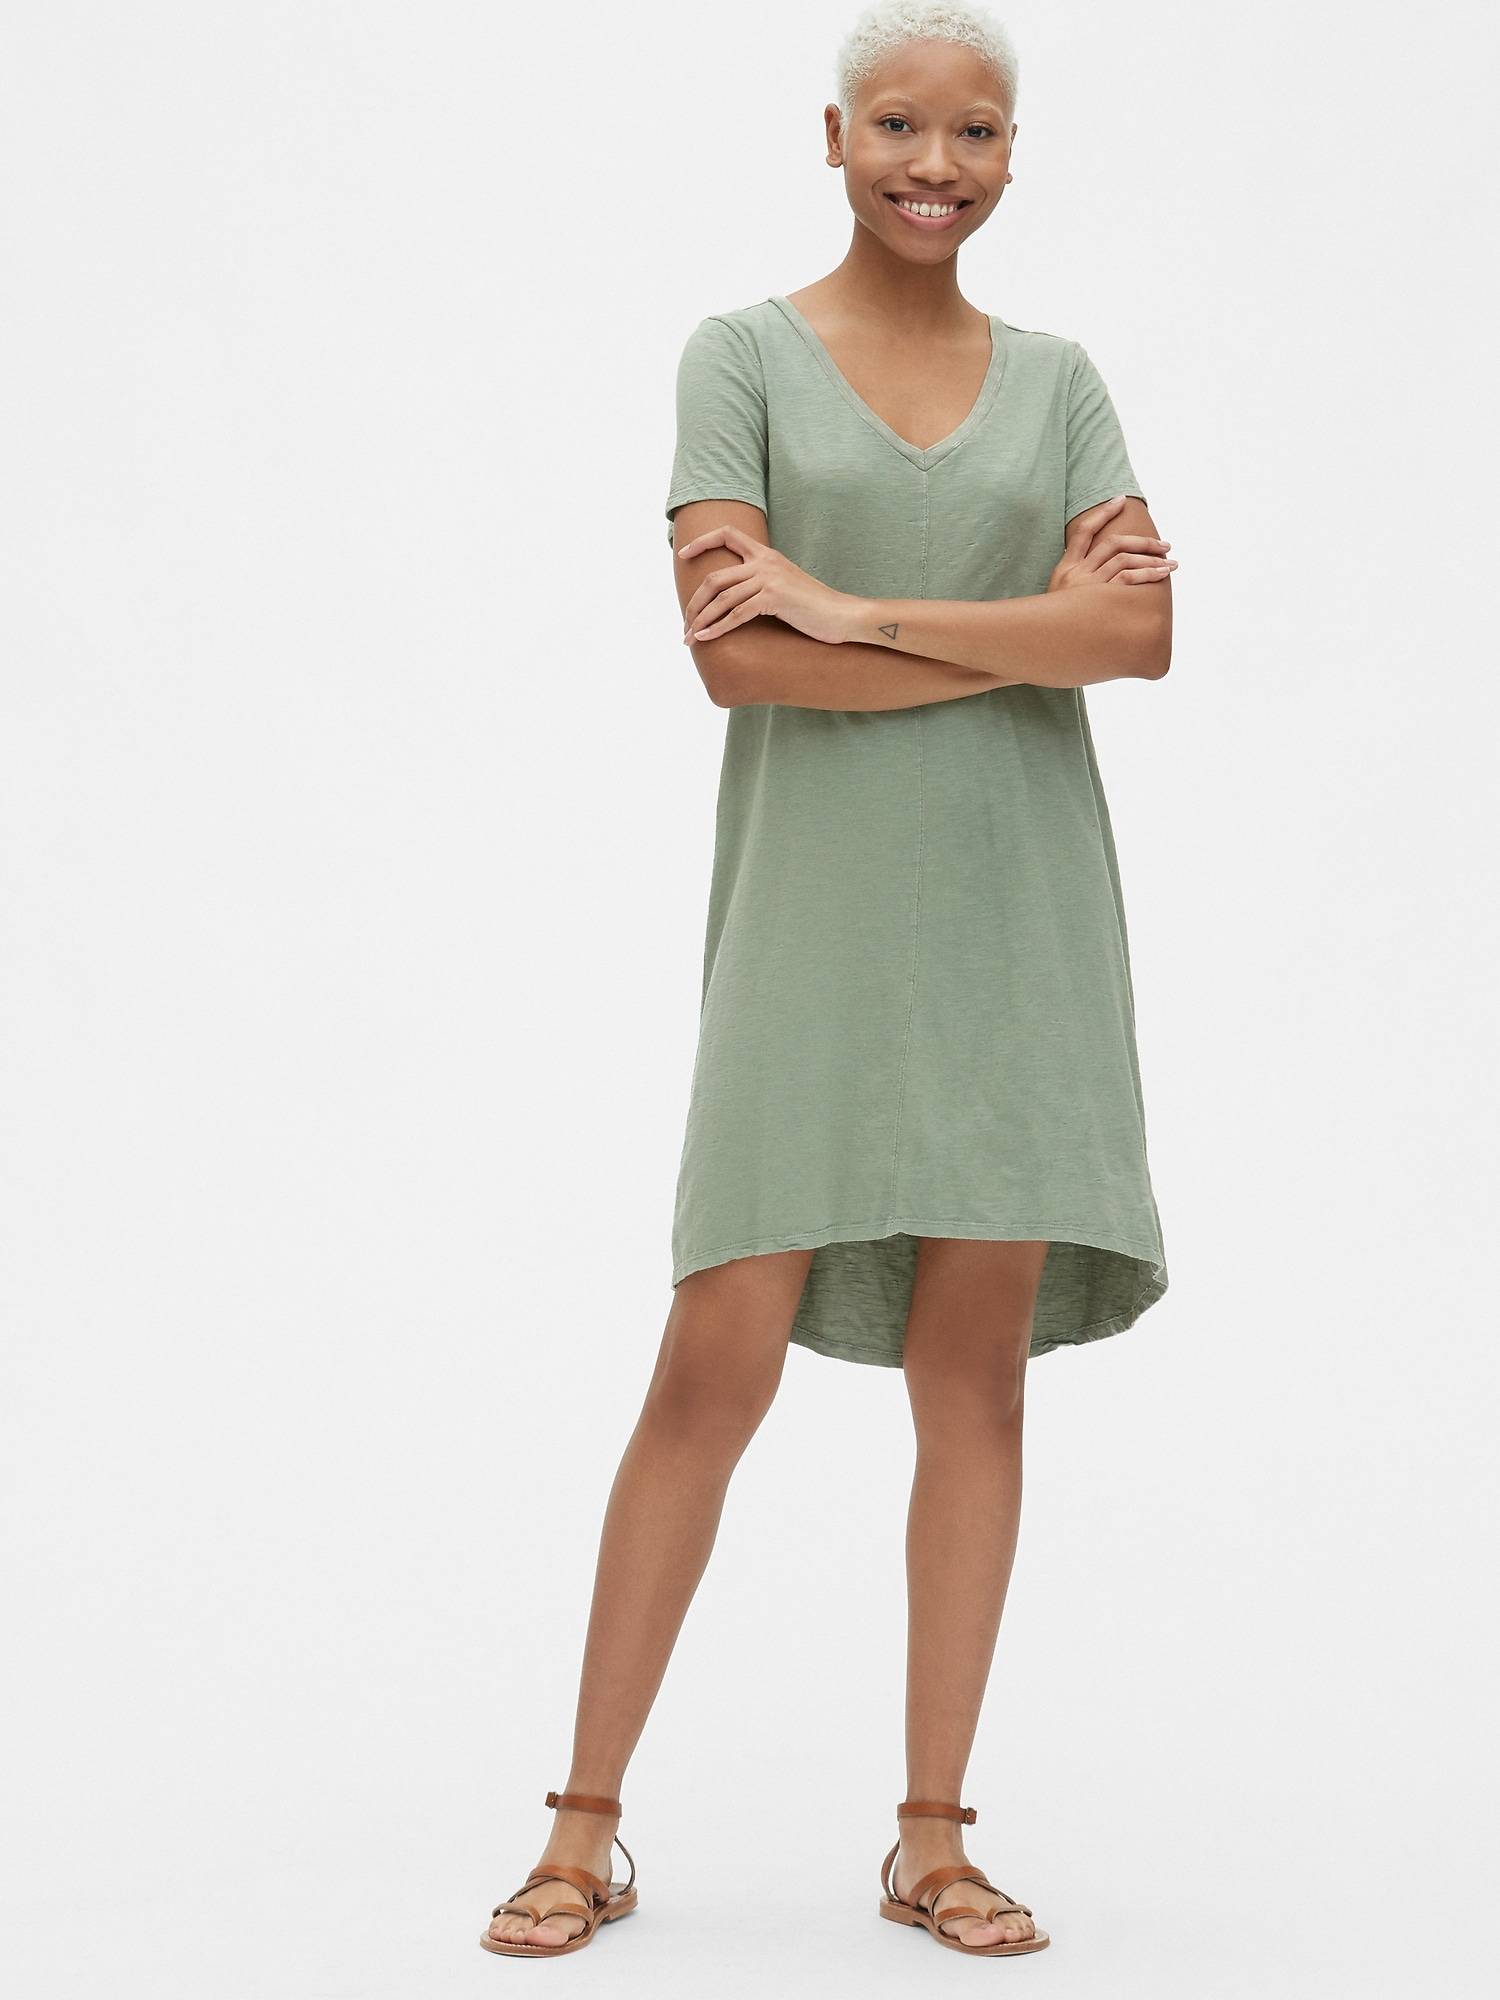 Gap Soft Slub Vintage Wash Womens V-Neck T-Shirt Dress